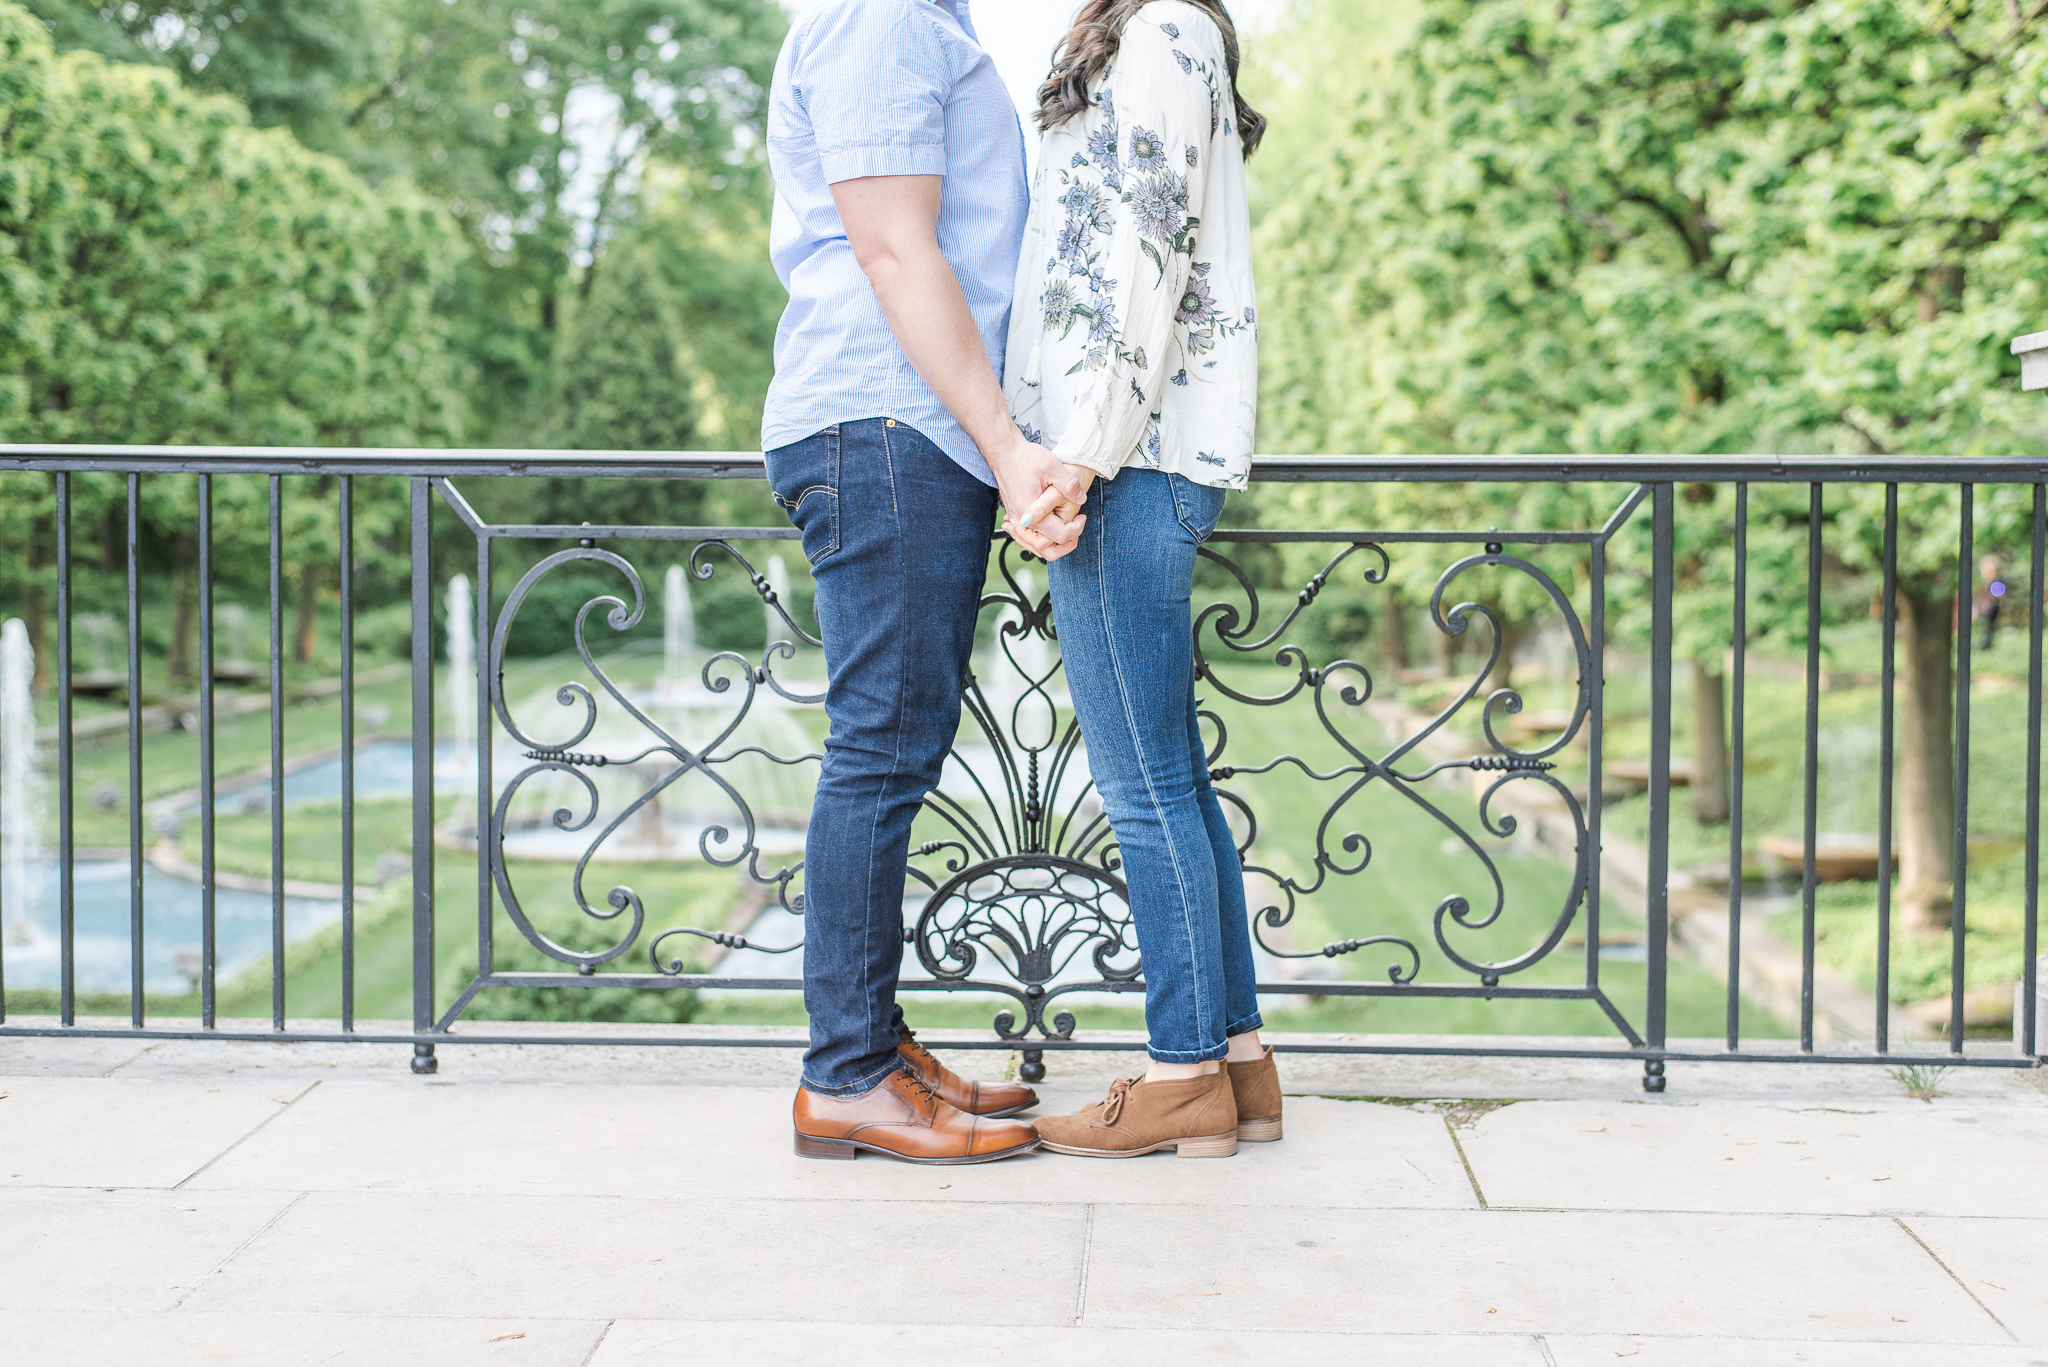 05_18_2019_Dana_Slifer_Photography_Heather_and_Sean_Engagement_Session_WEB_14.jpg